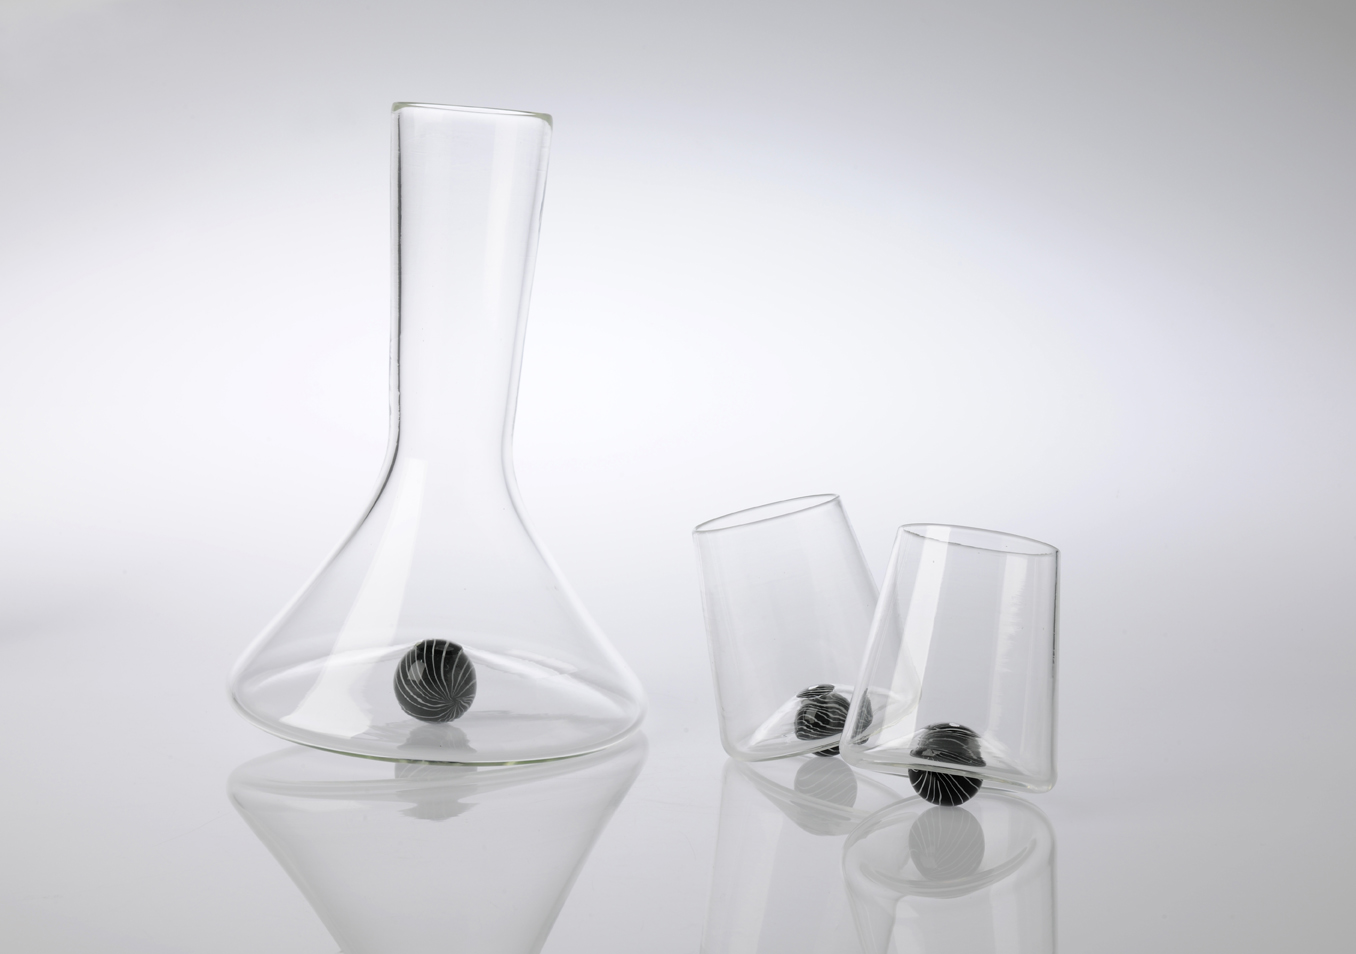 Rondure Decanter and Wine Tumblers.  Image by Michael Haines